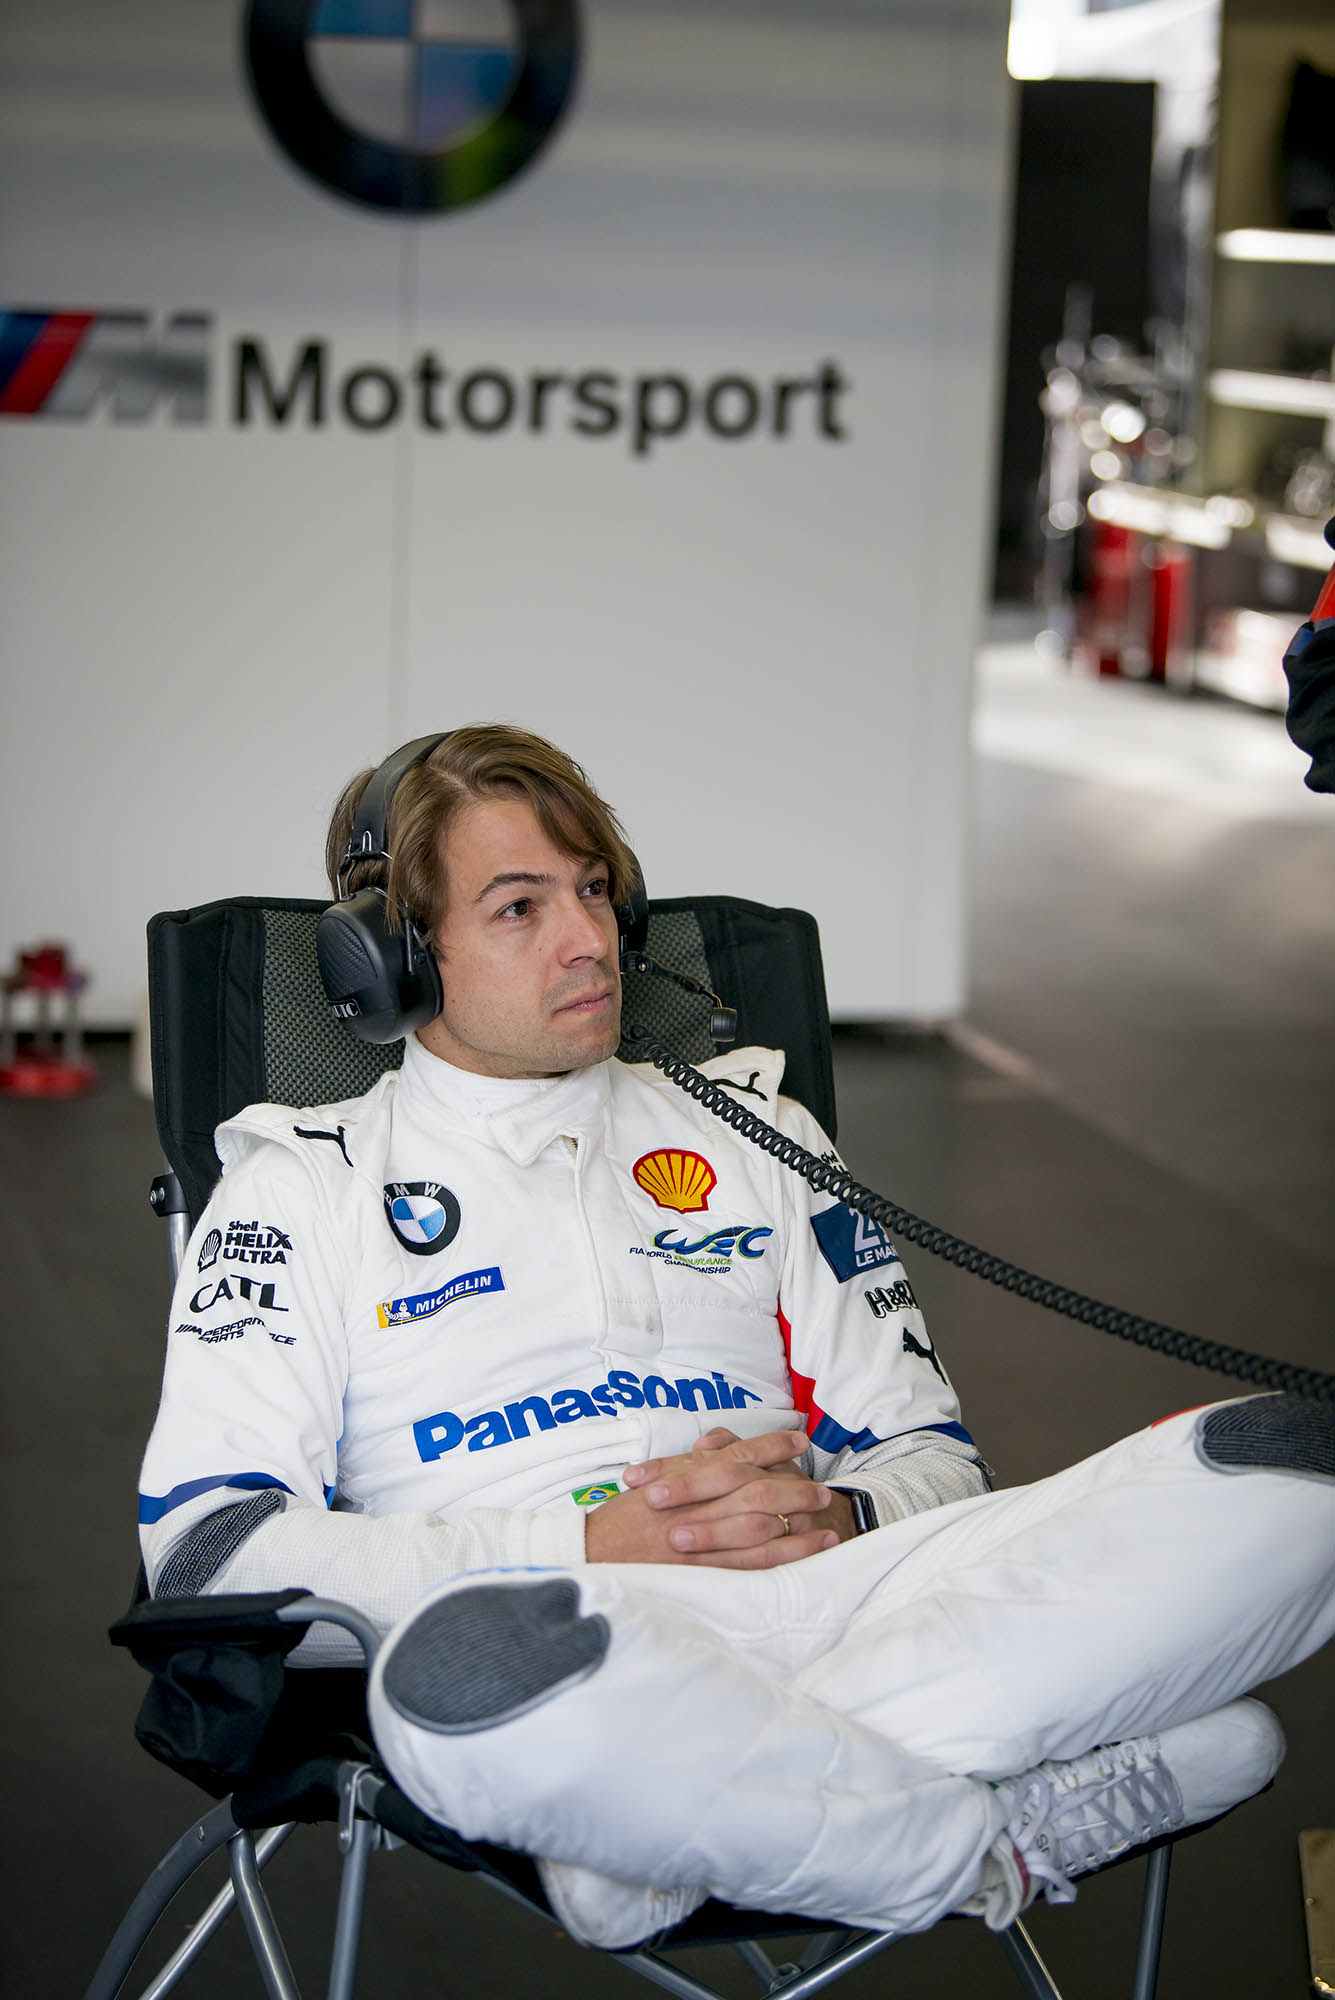 MRS_BMW_LeMans2019_05019